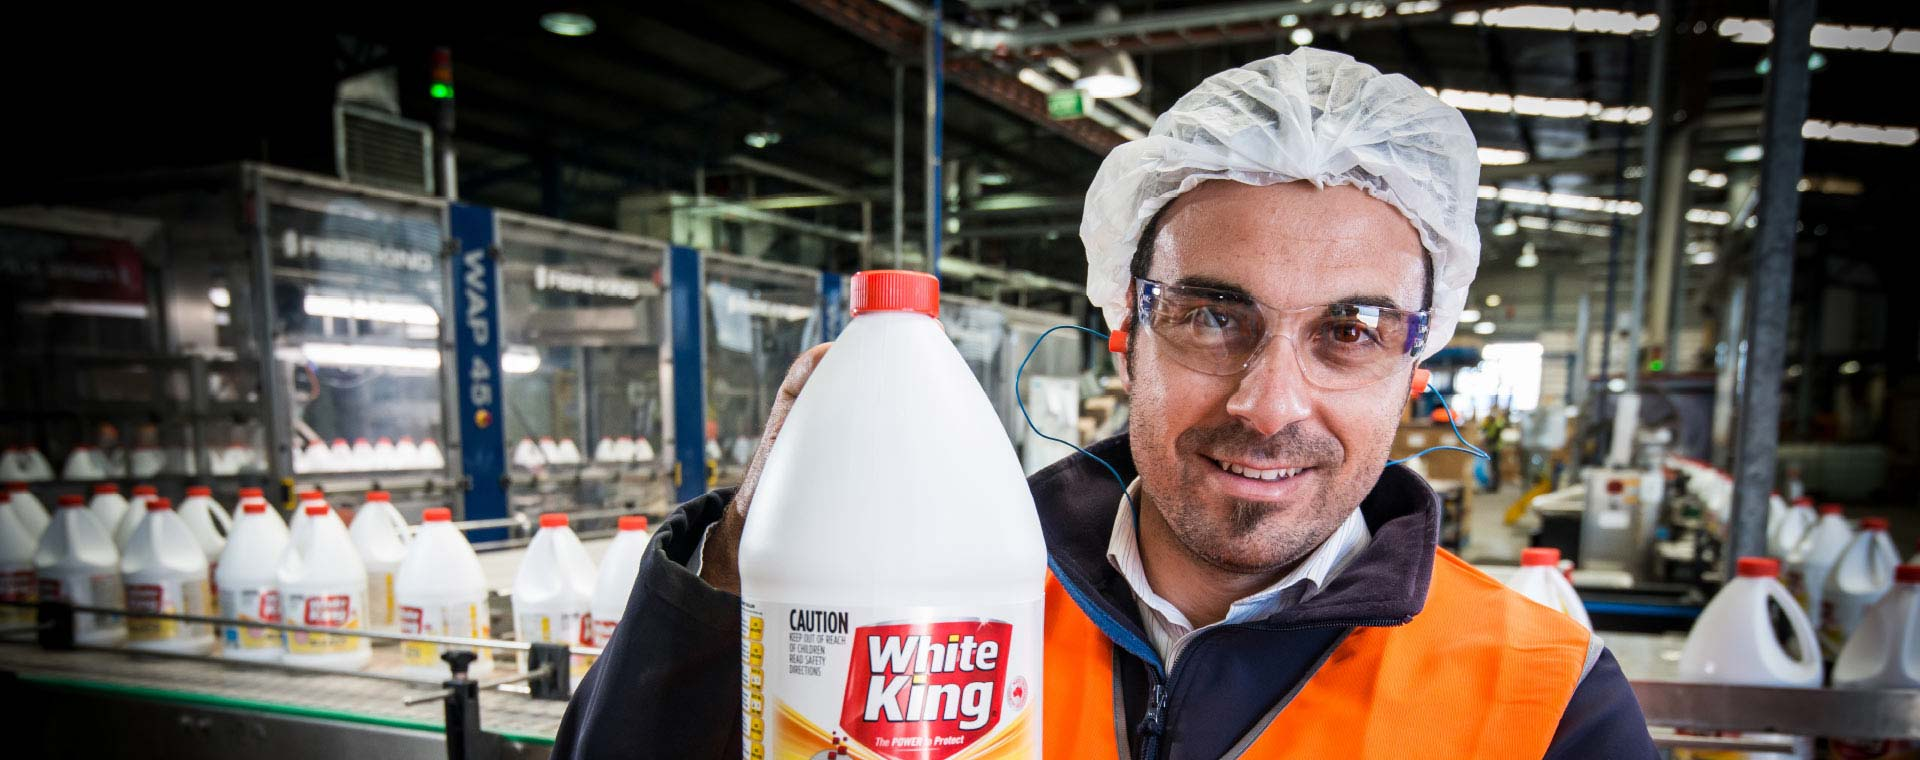 Pental worker holding up bottle of White King